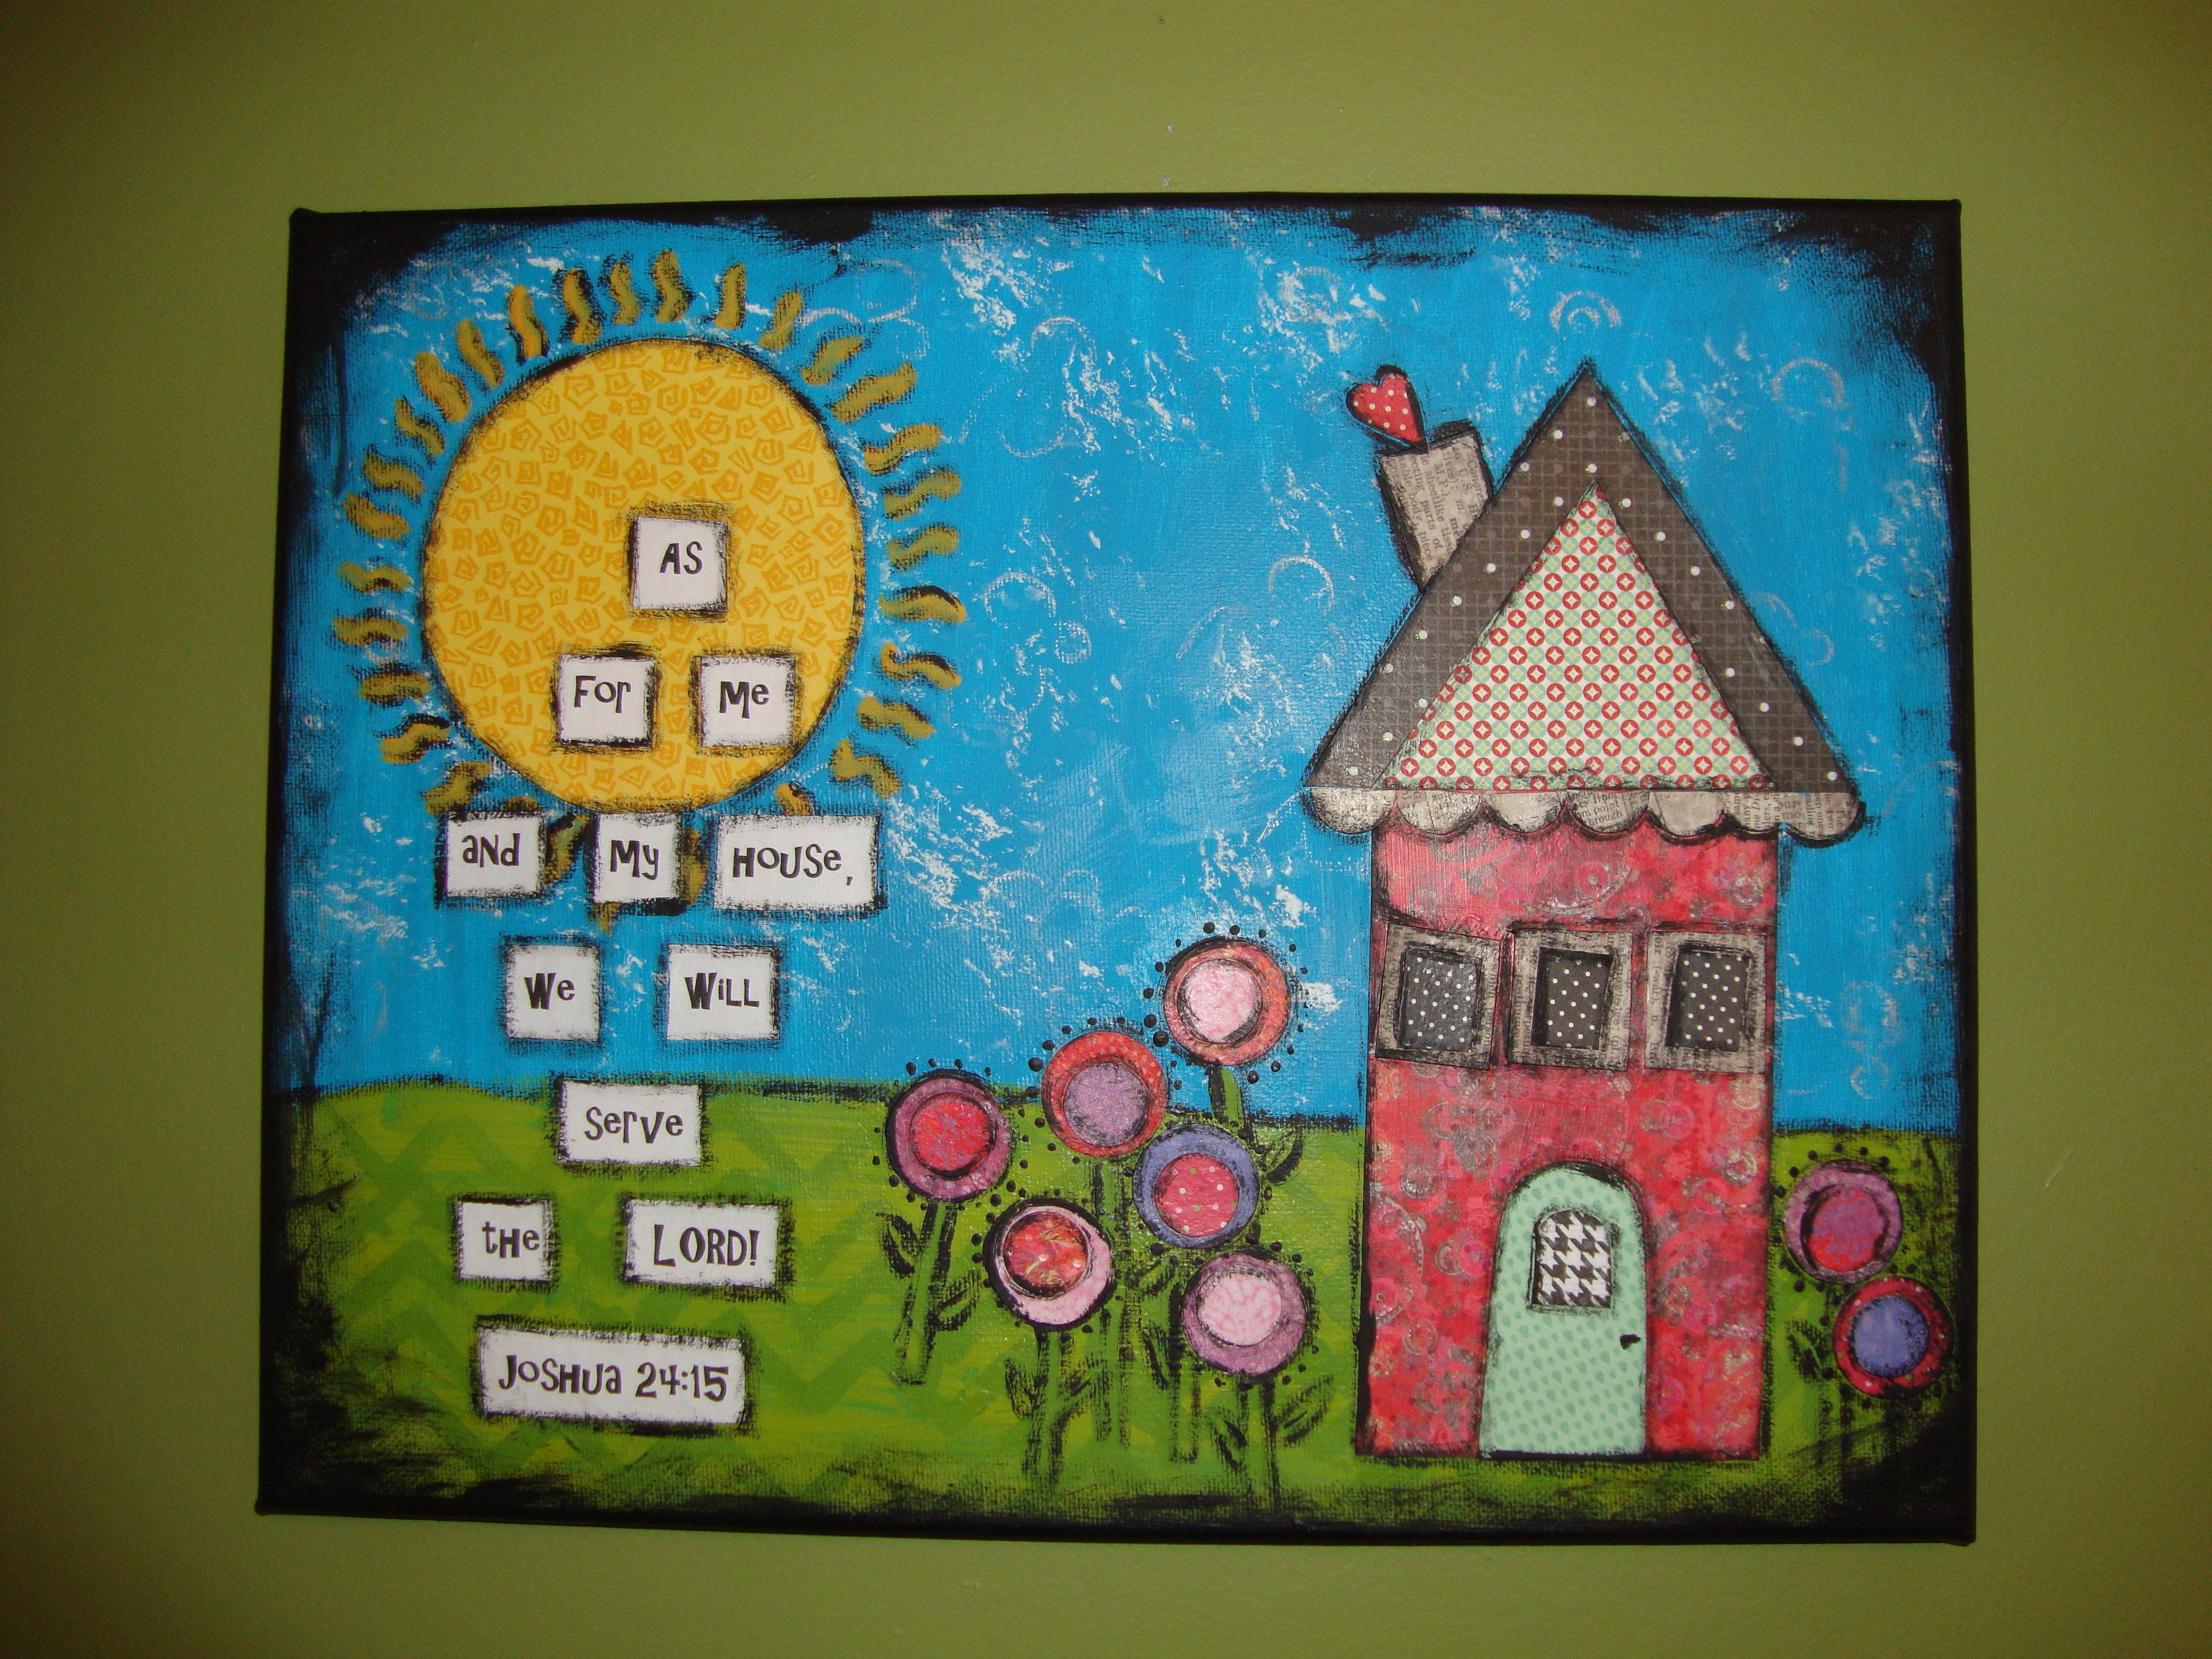 Paper and paint on canvas cool art ideas pinterest for Cool canvas painting ideas